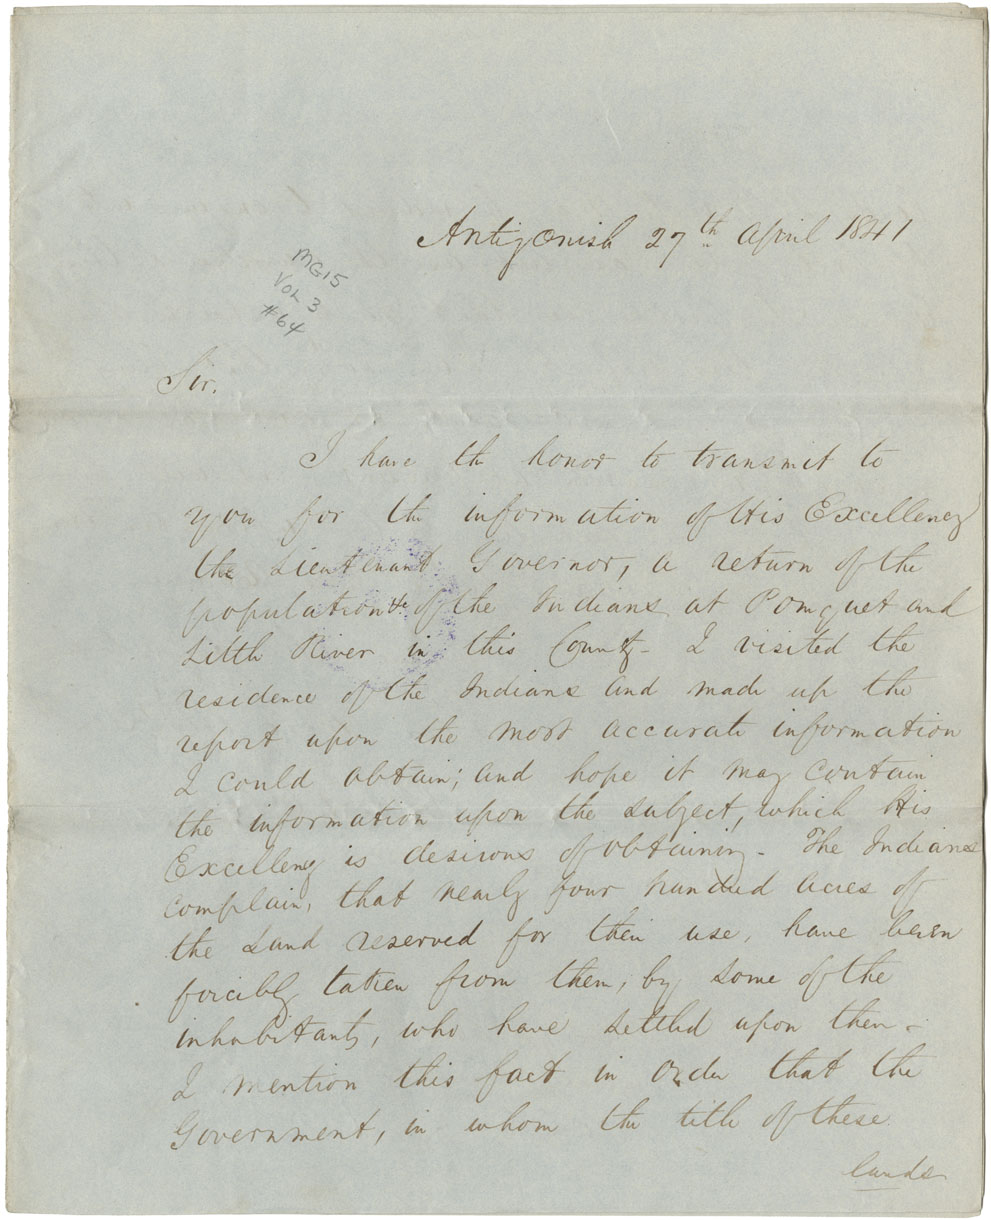 Letter from W. Henry to Rupert George reporting on population of the Mi'kmaq in the county of Sydney, with a petition to W.M. Dodd for help from the Eskasoni Mi'kmaq and a list and number of inhabitants.